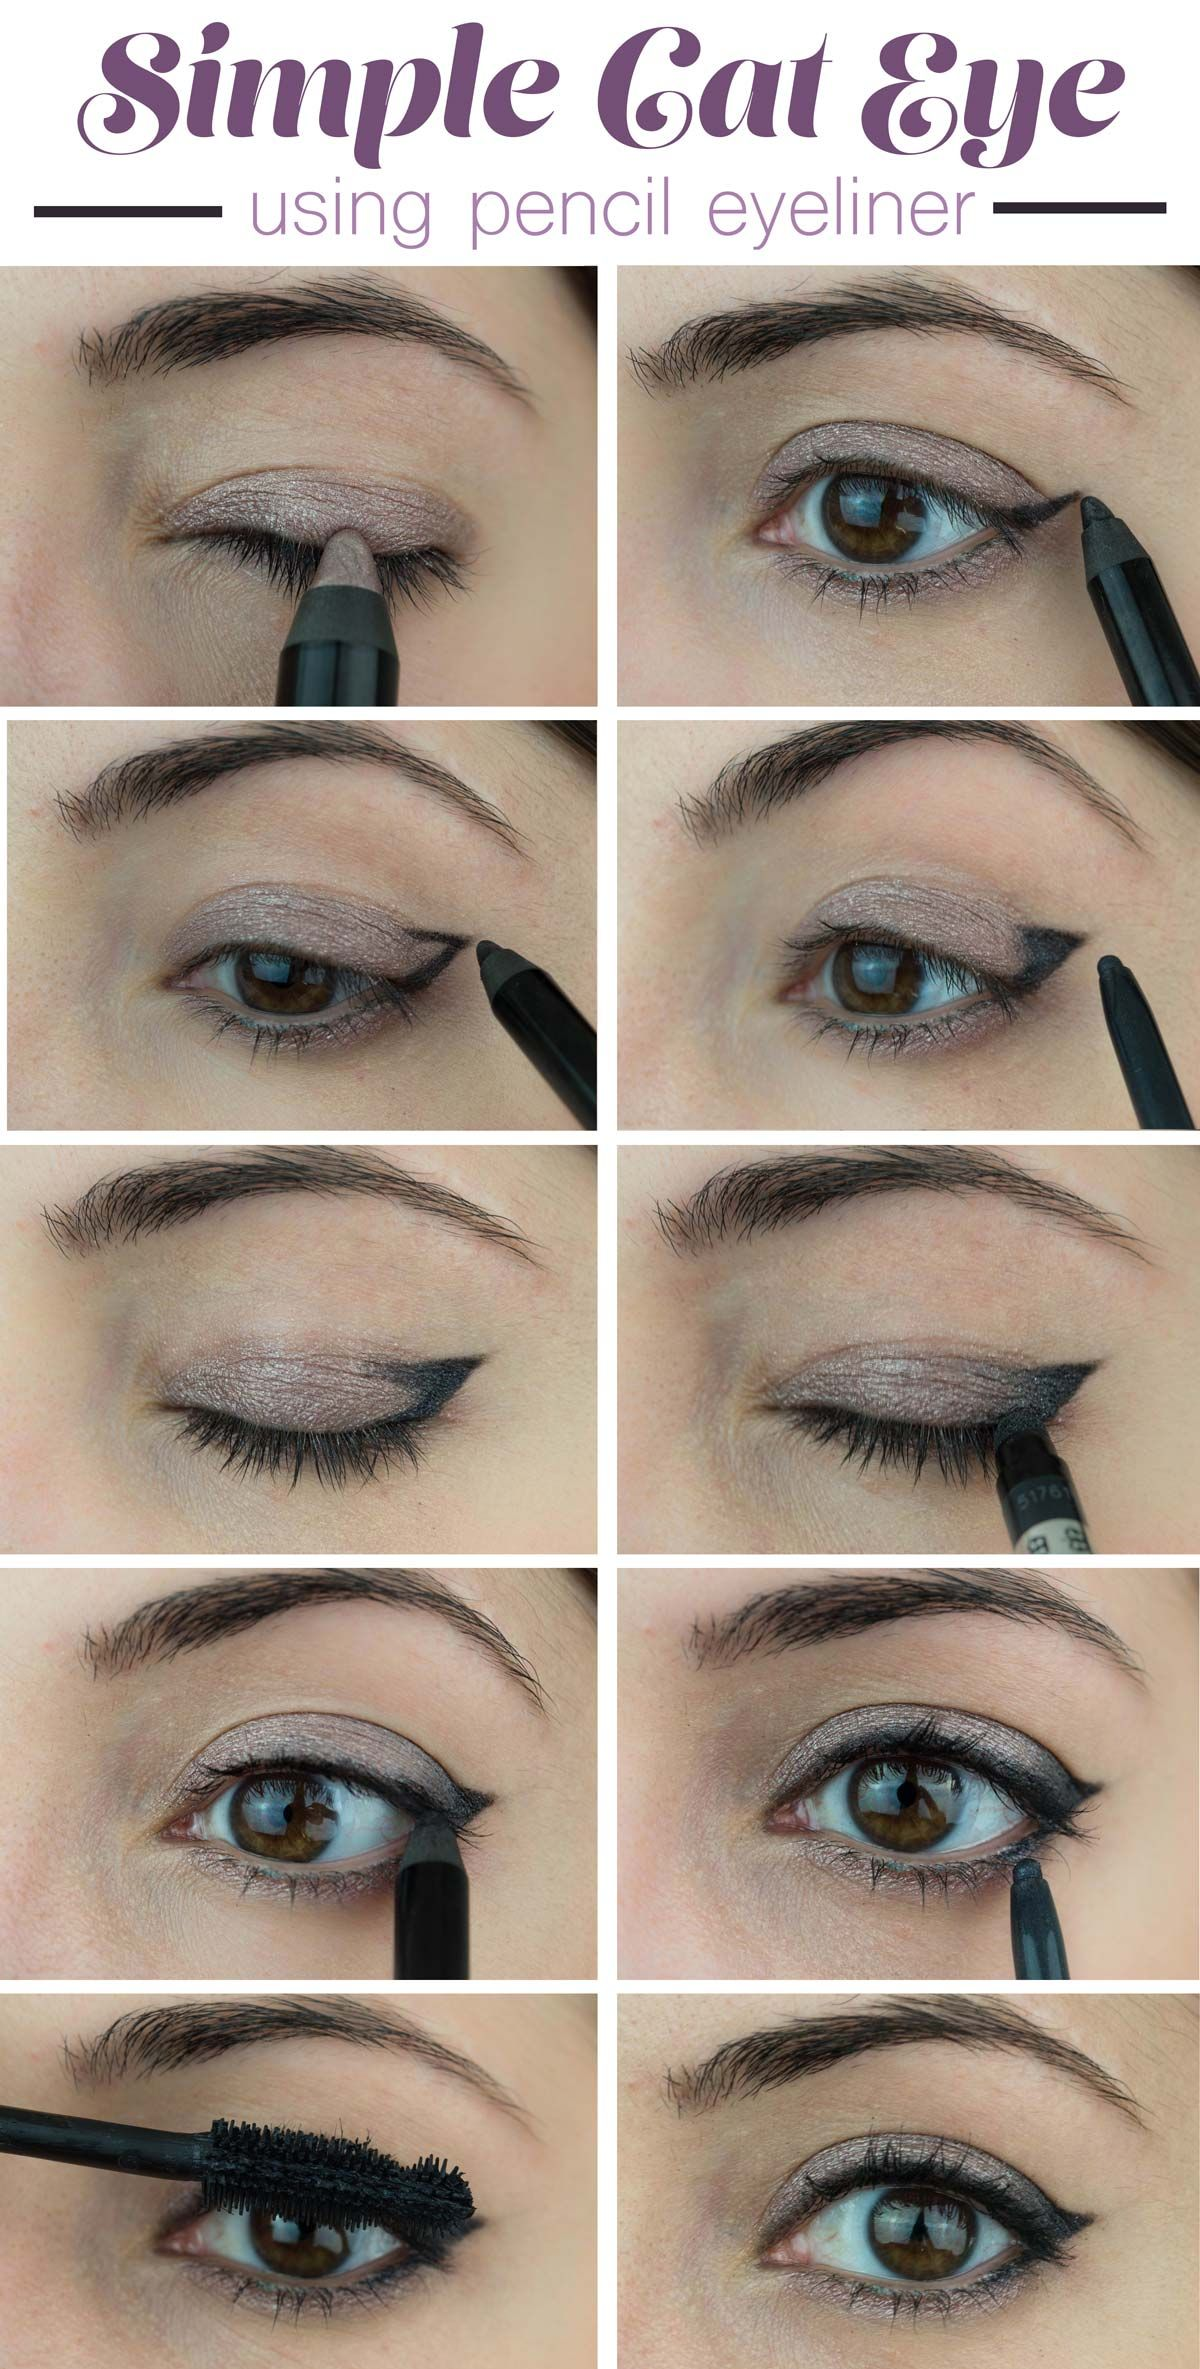 How To Create a Simple Cat Eye Look Using Pencil Eyeliner